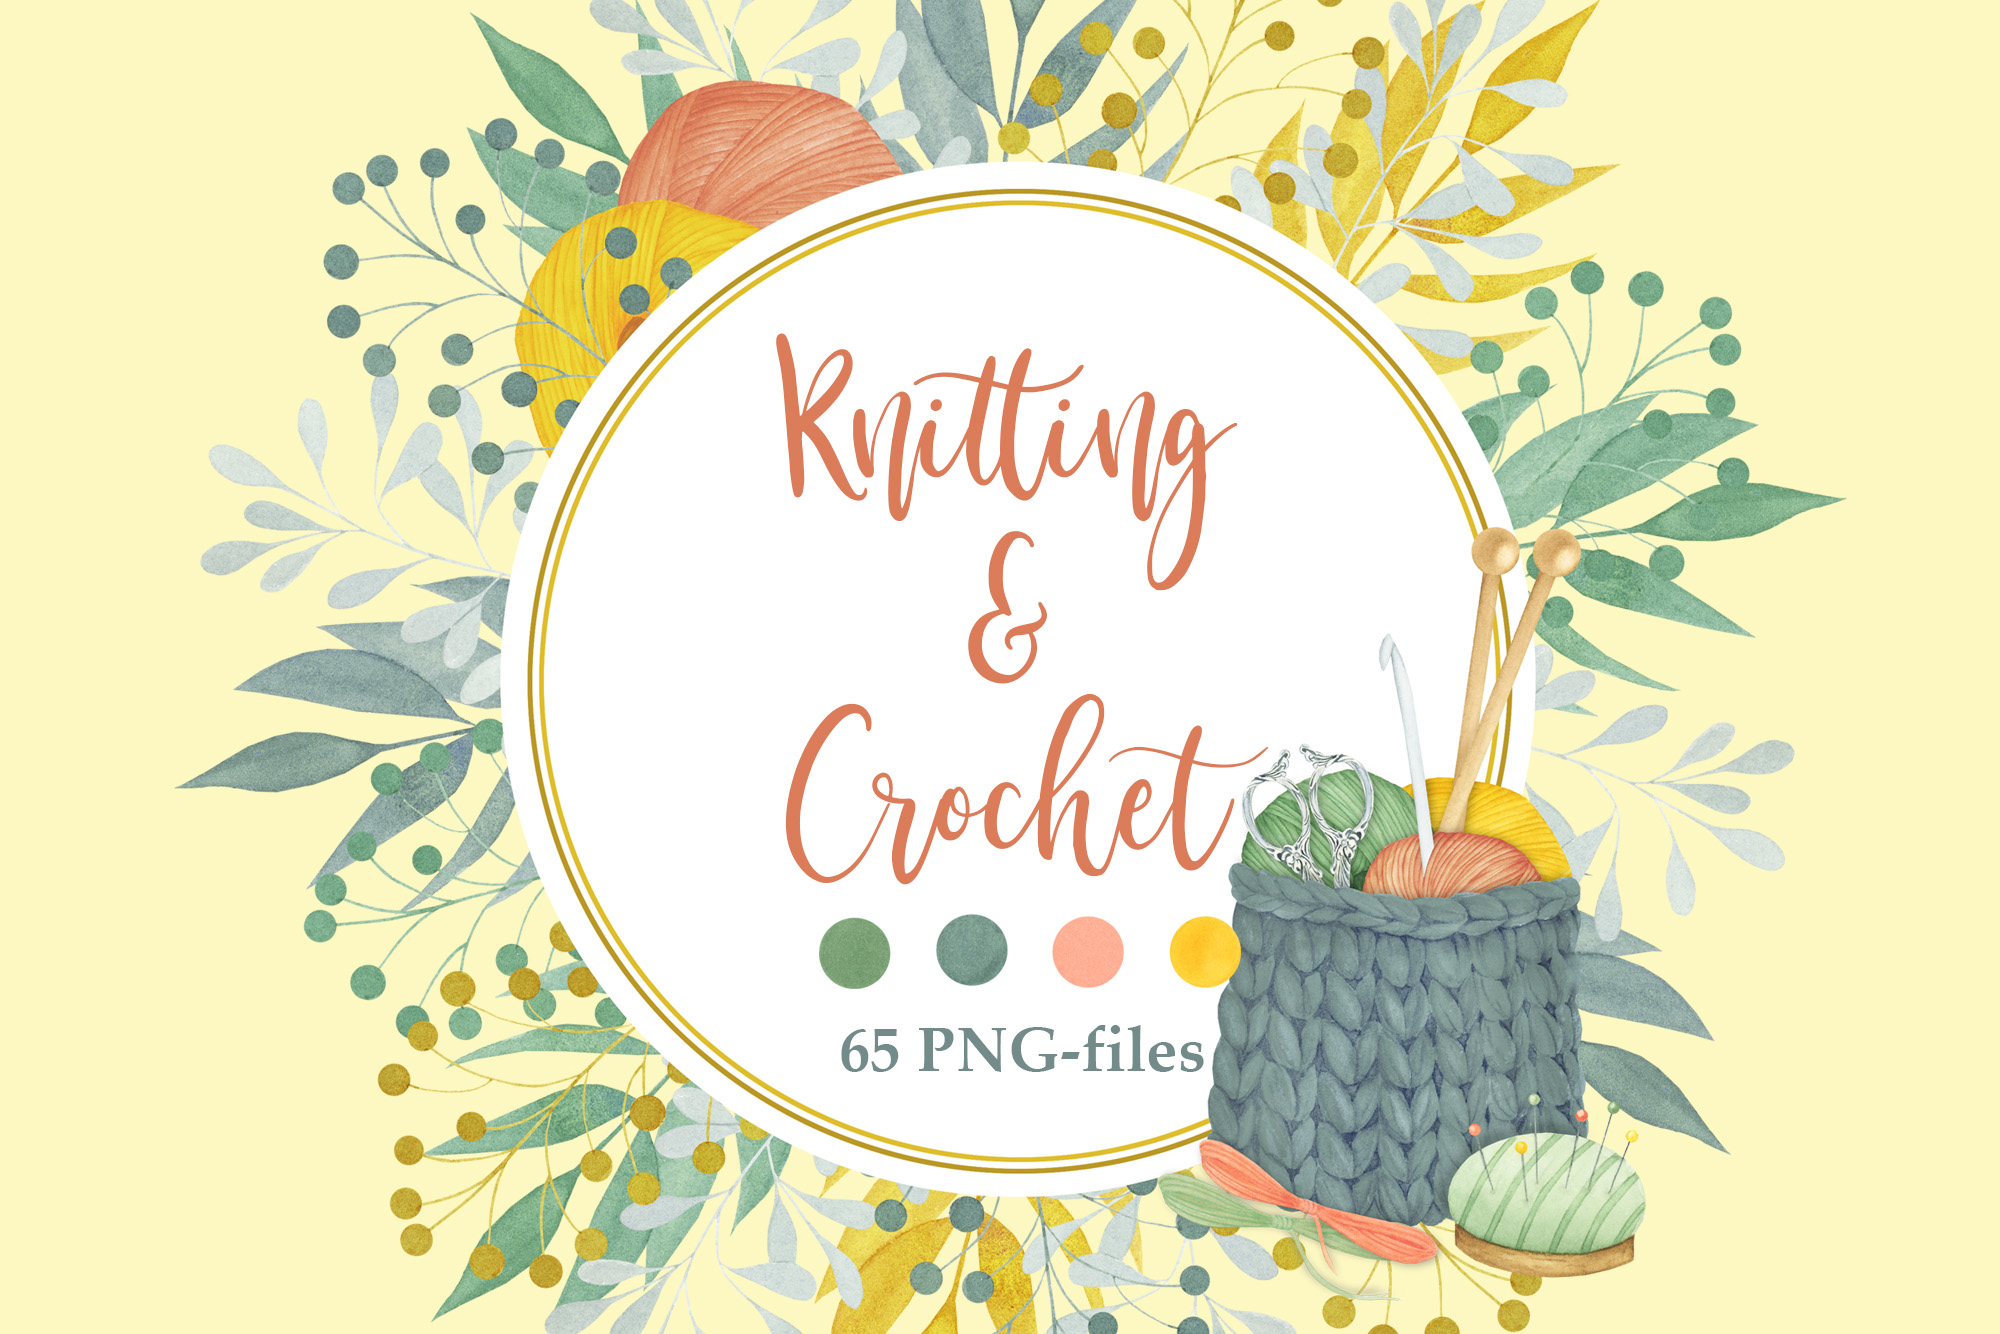 Watercolor Knitting and Crochet Clipart.